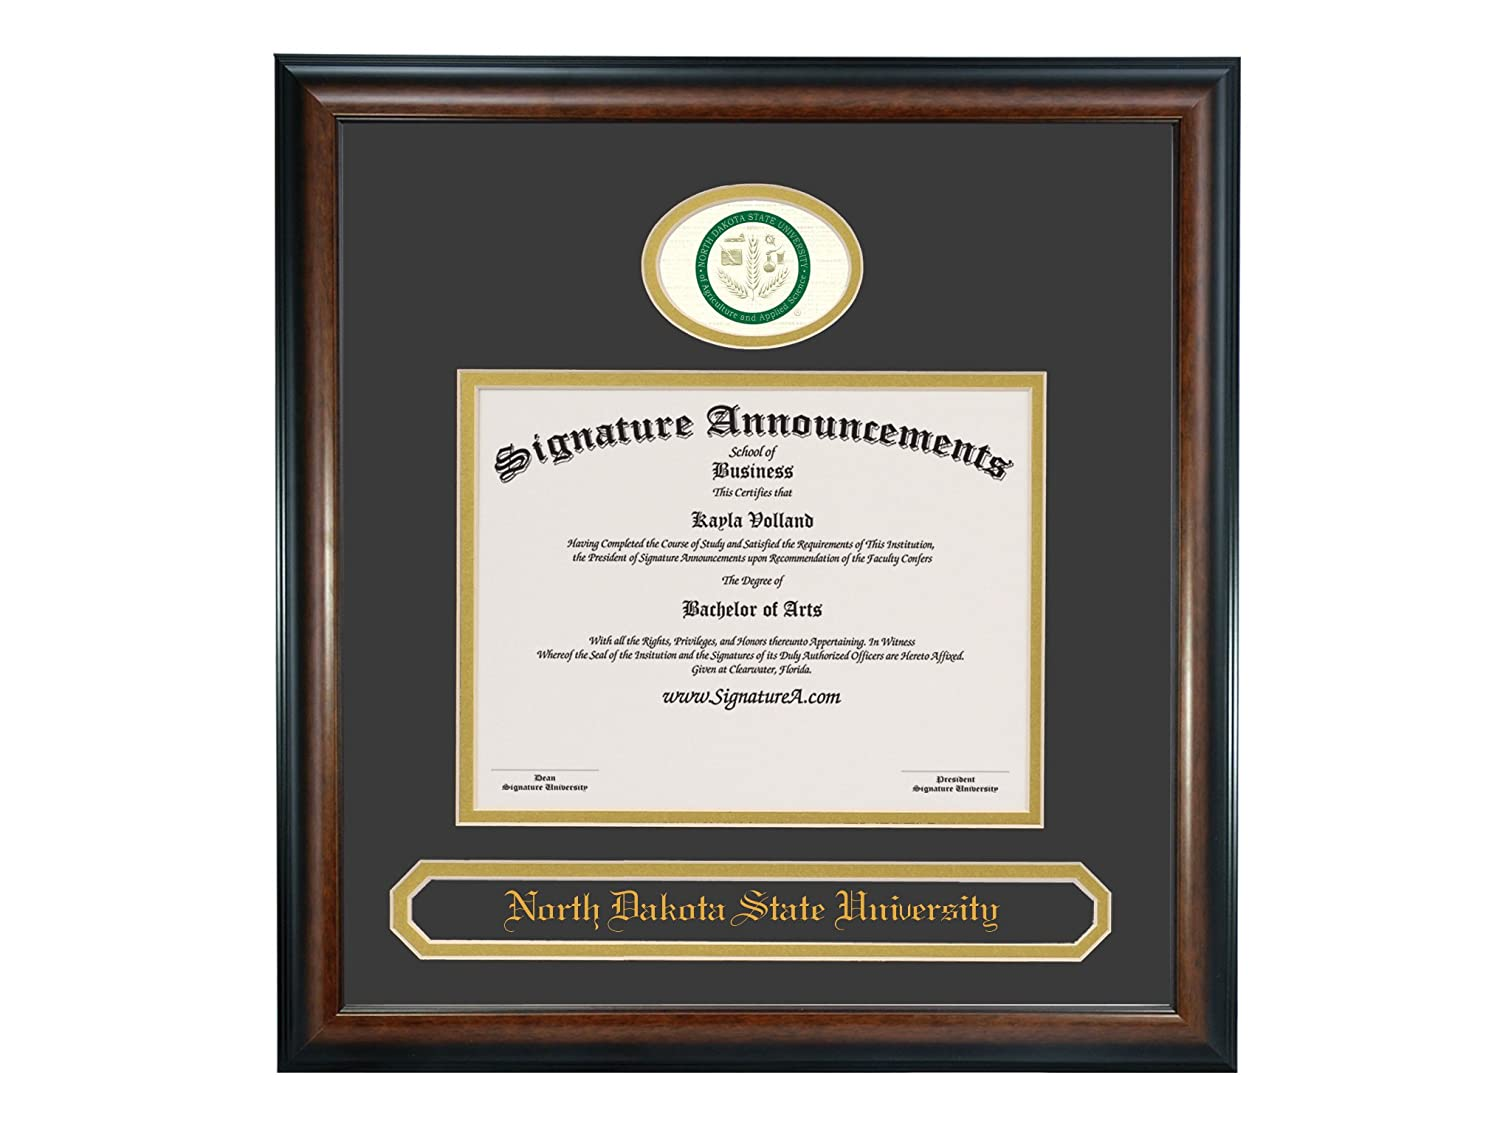 Professional//Doctor Sculpted Foil Seal /& Name Graduation Diploma Frame 16 x 16 Matte Mahogany Signature Announcements North-Dakota-State-University Undergraduate